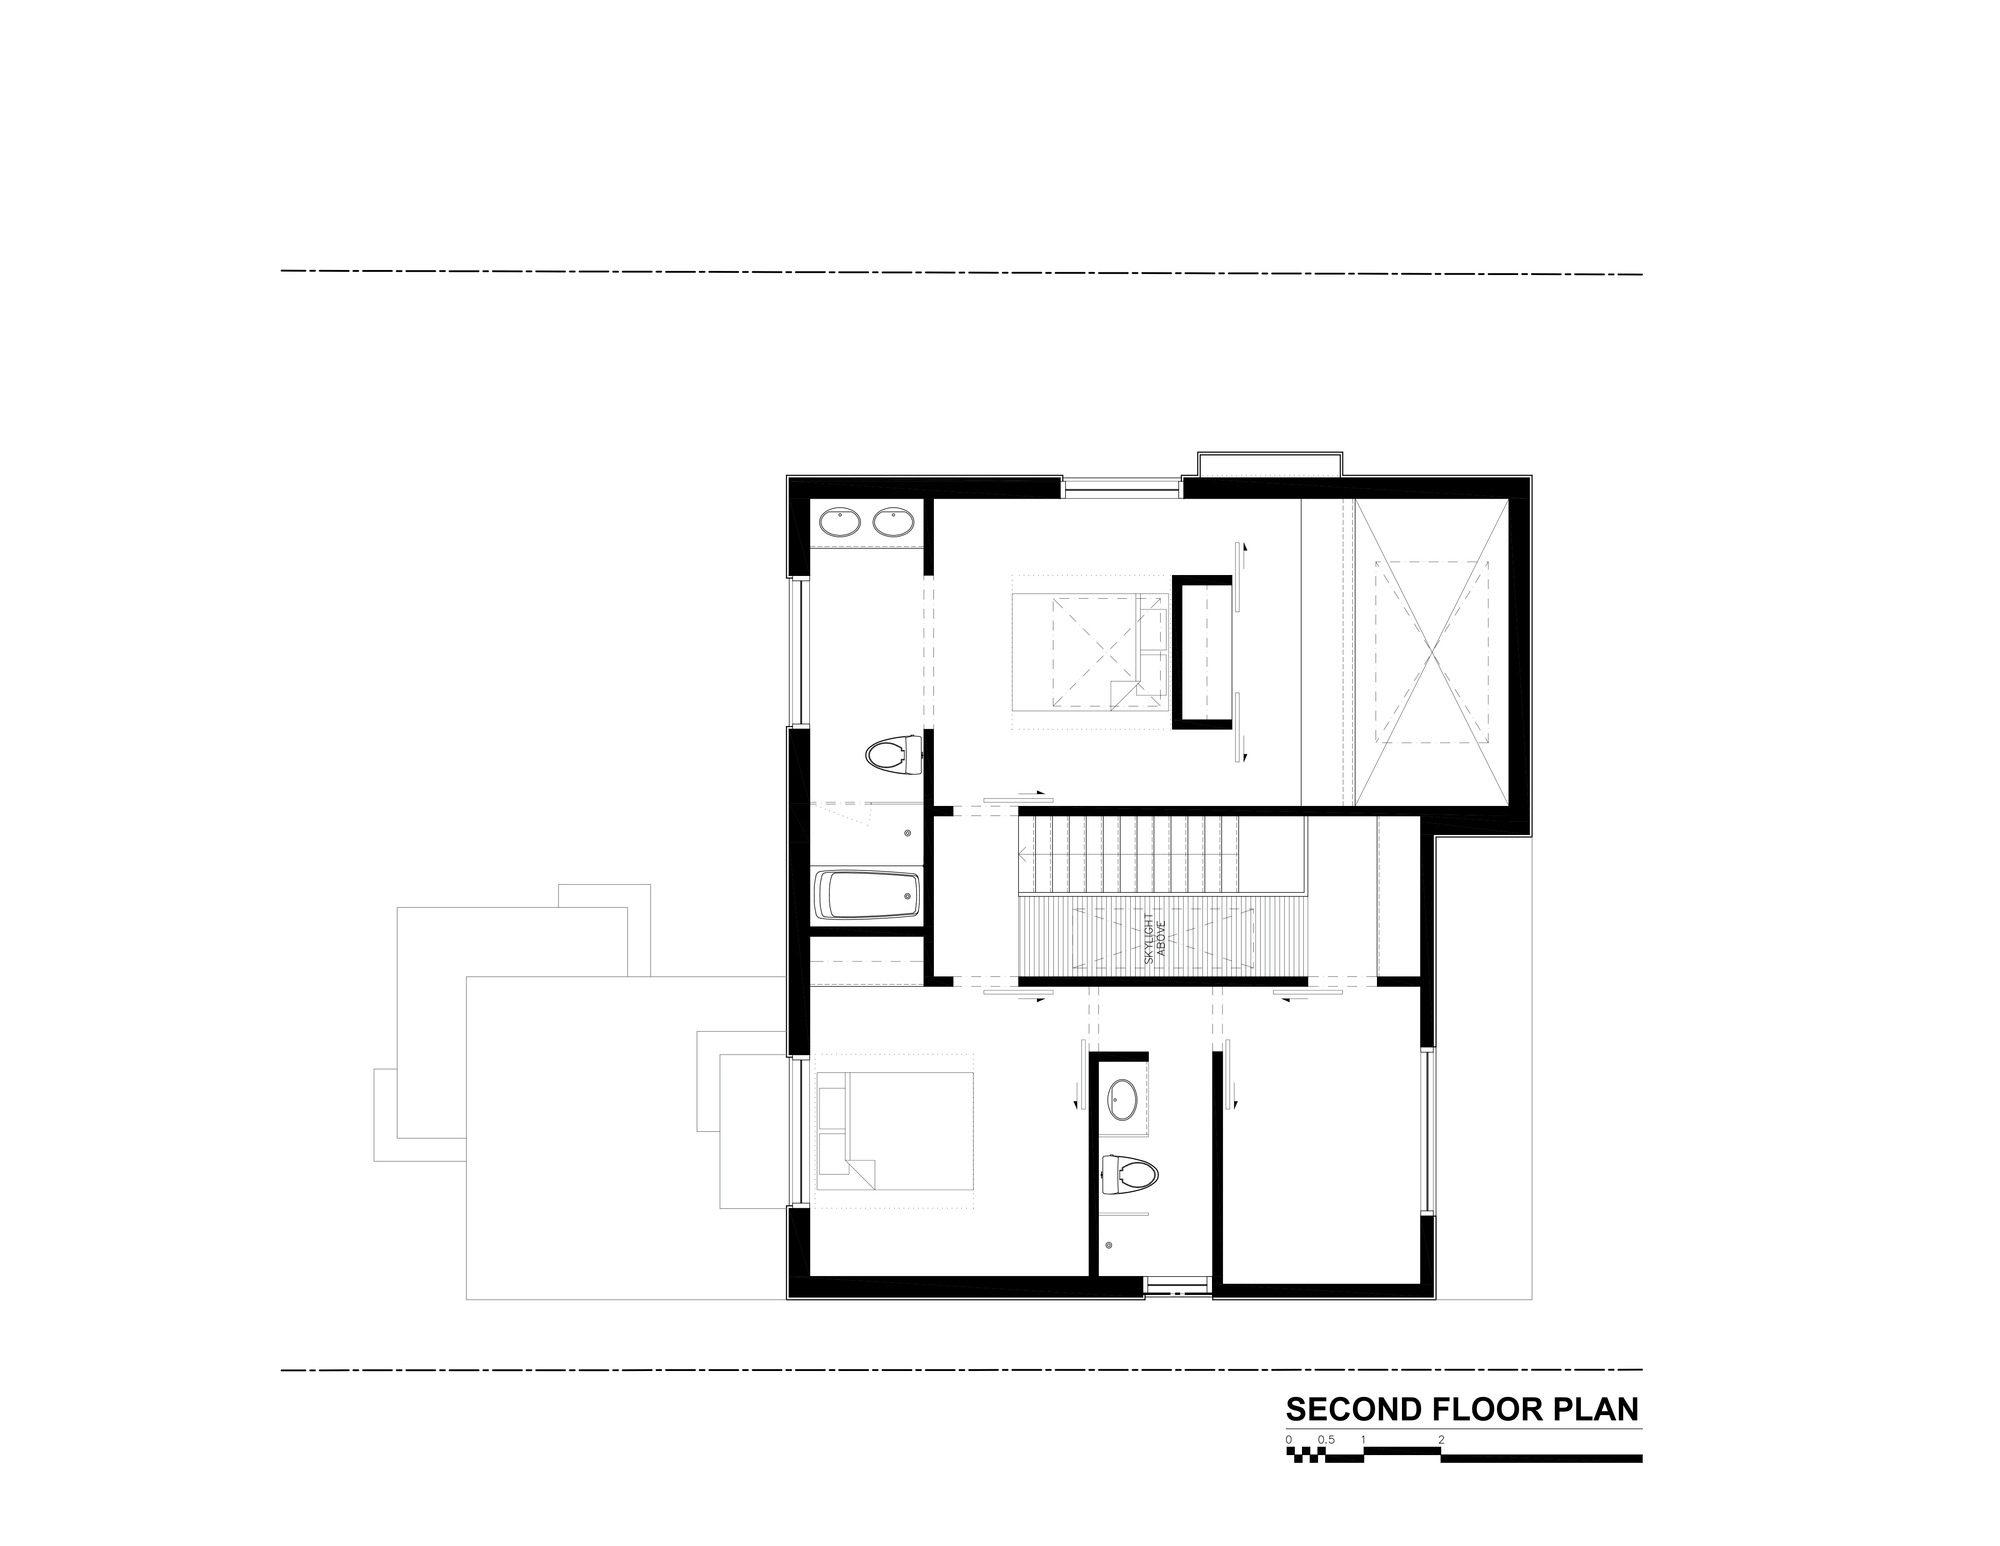 2nd Floor House Plans Gallery Of Thorax House Rzlbd 14